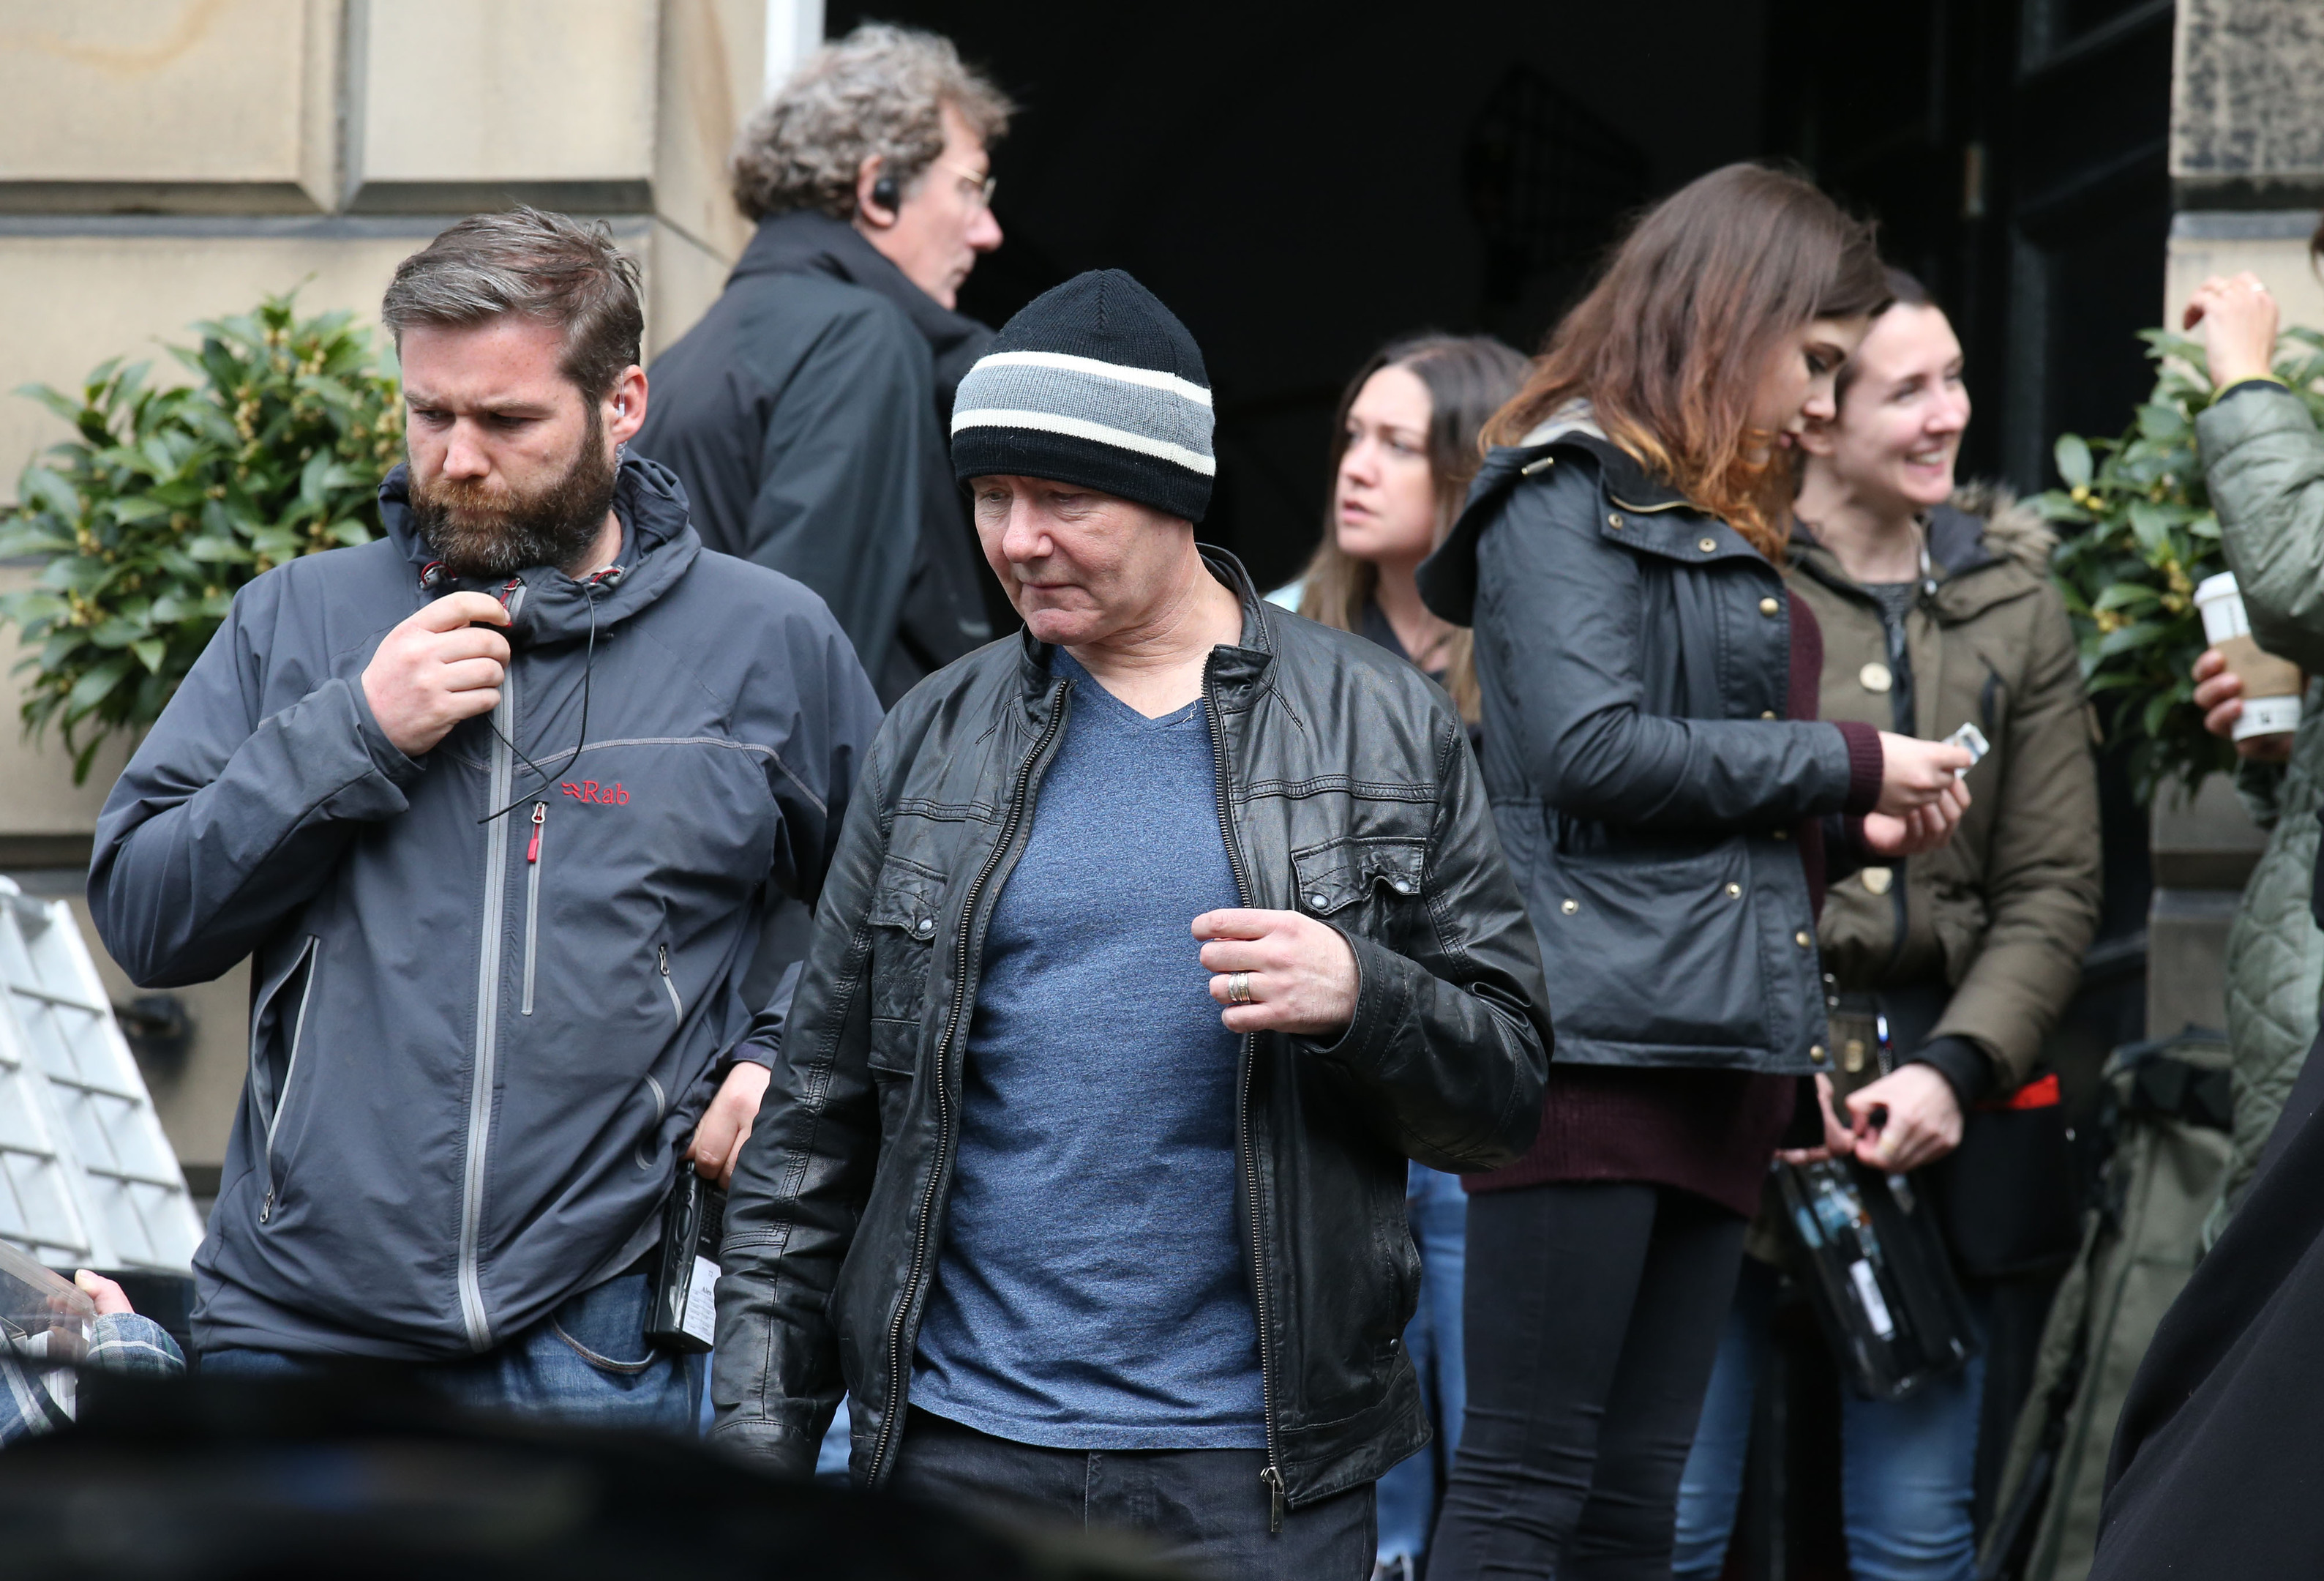 Irvine Welsh (centre) on the set of the film Trainspotting 2 which is currently being filmed in Edinburgh.